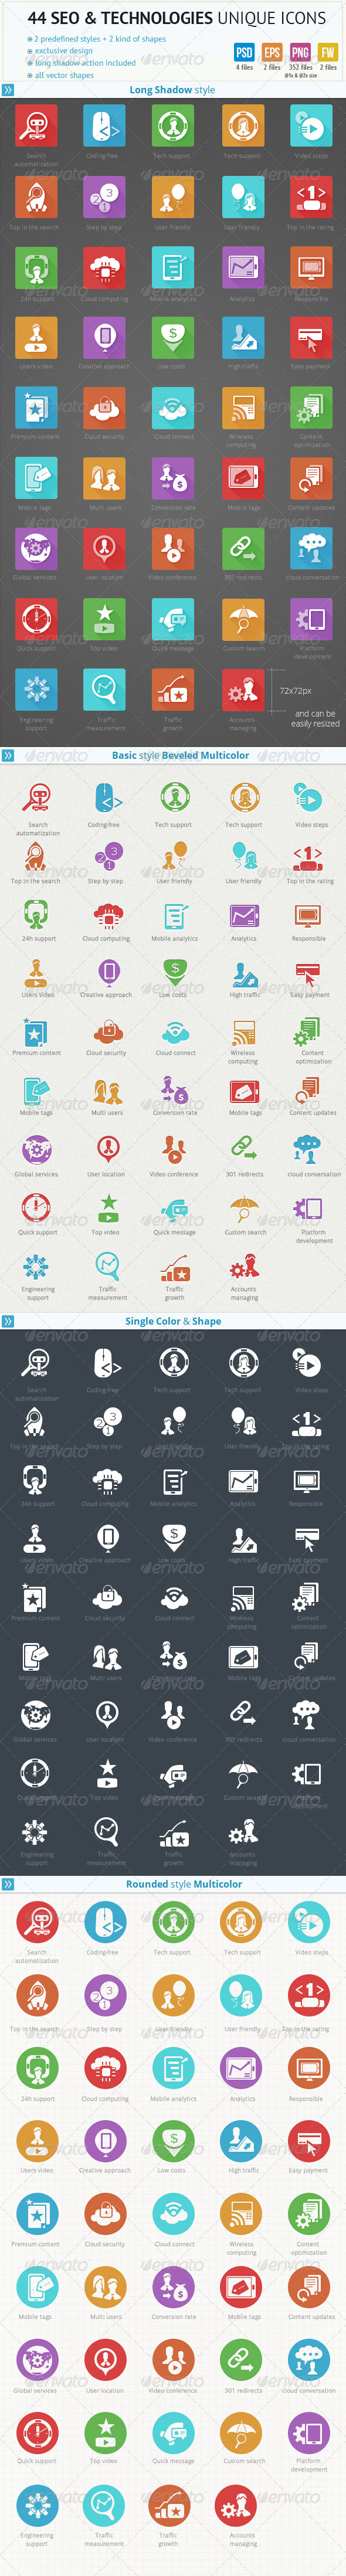 44 SEO and Technologies Unique Icons - Technology Icons